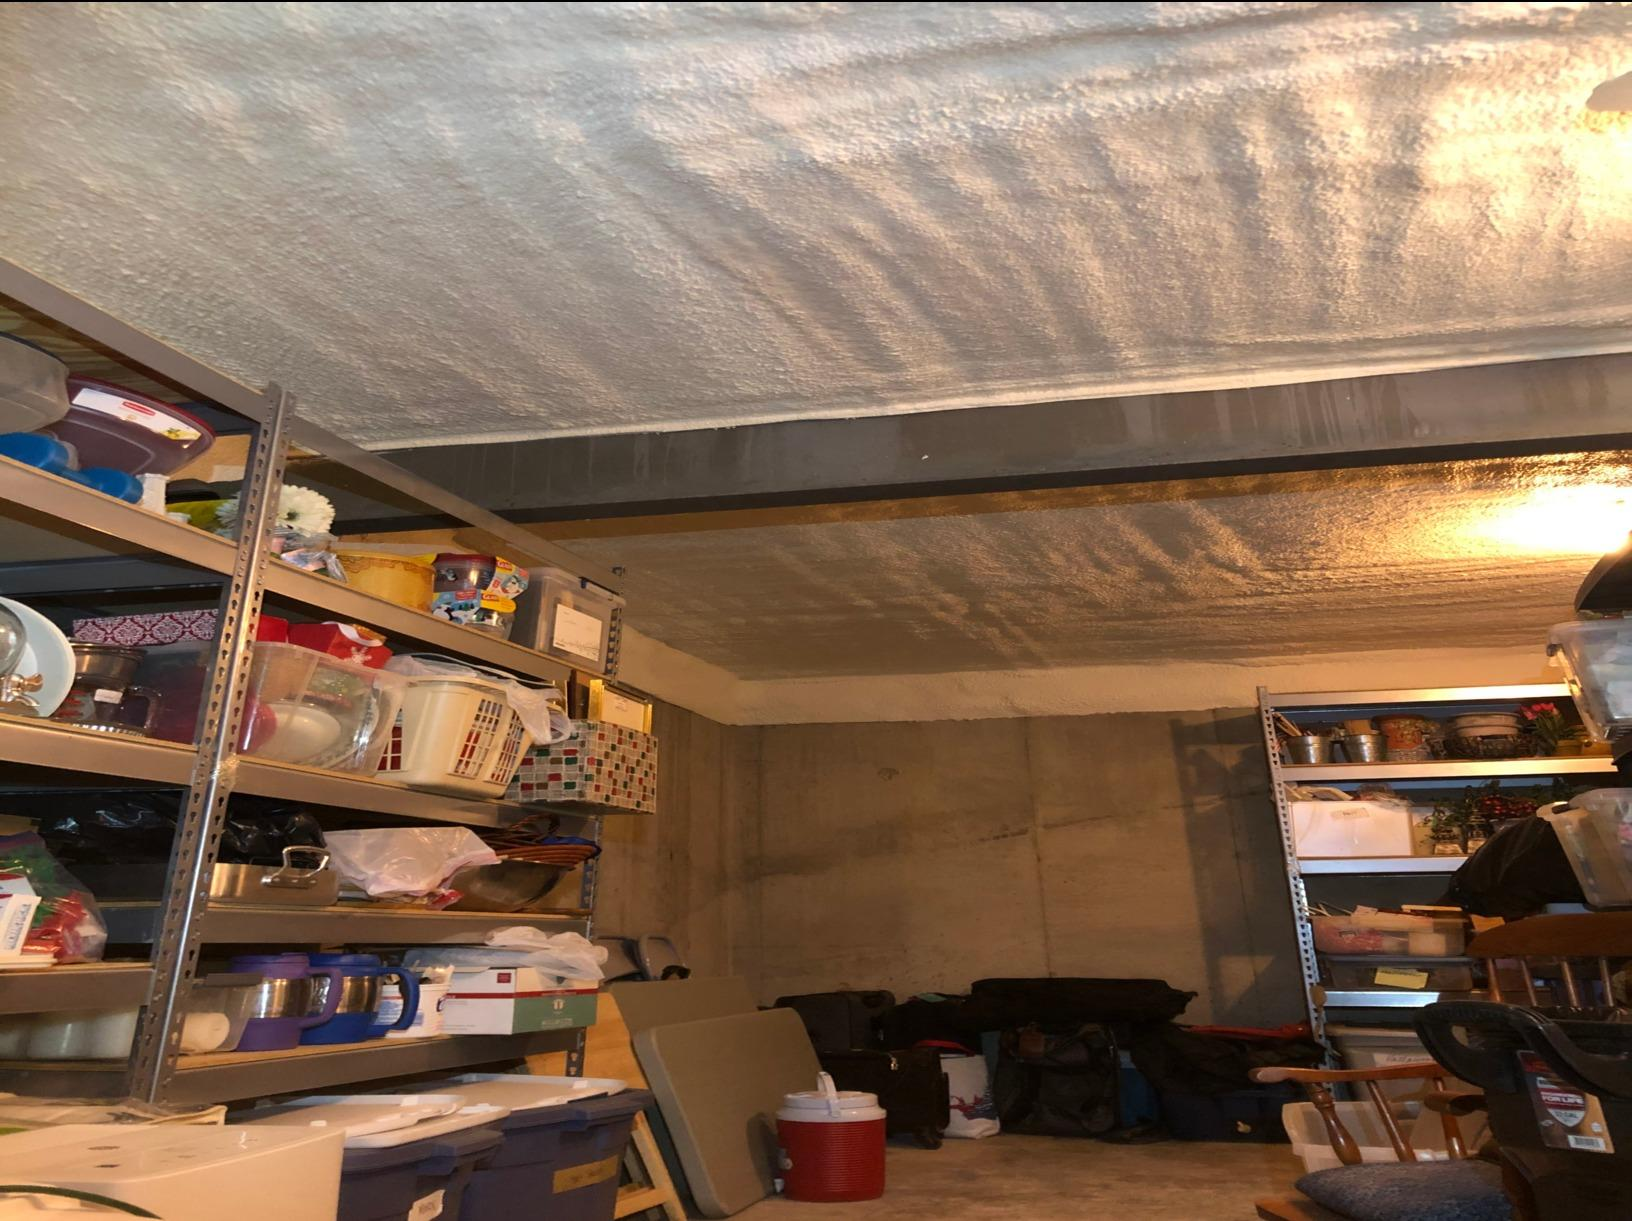 Closed Cell Spray Foam in Leawood, Ks - After Photo